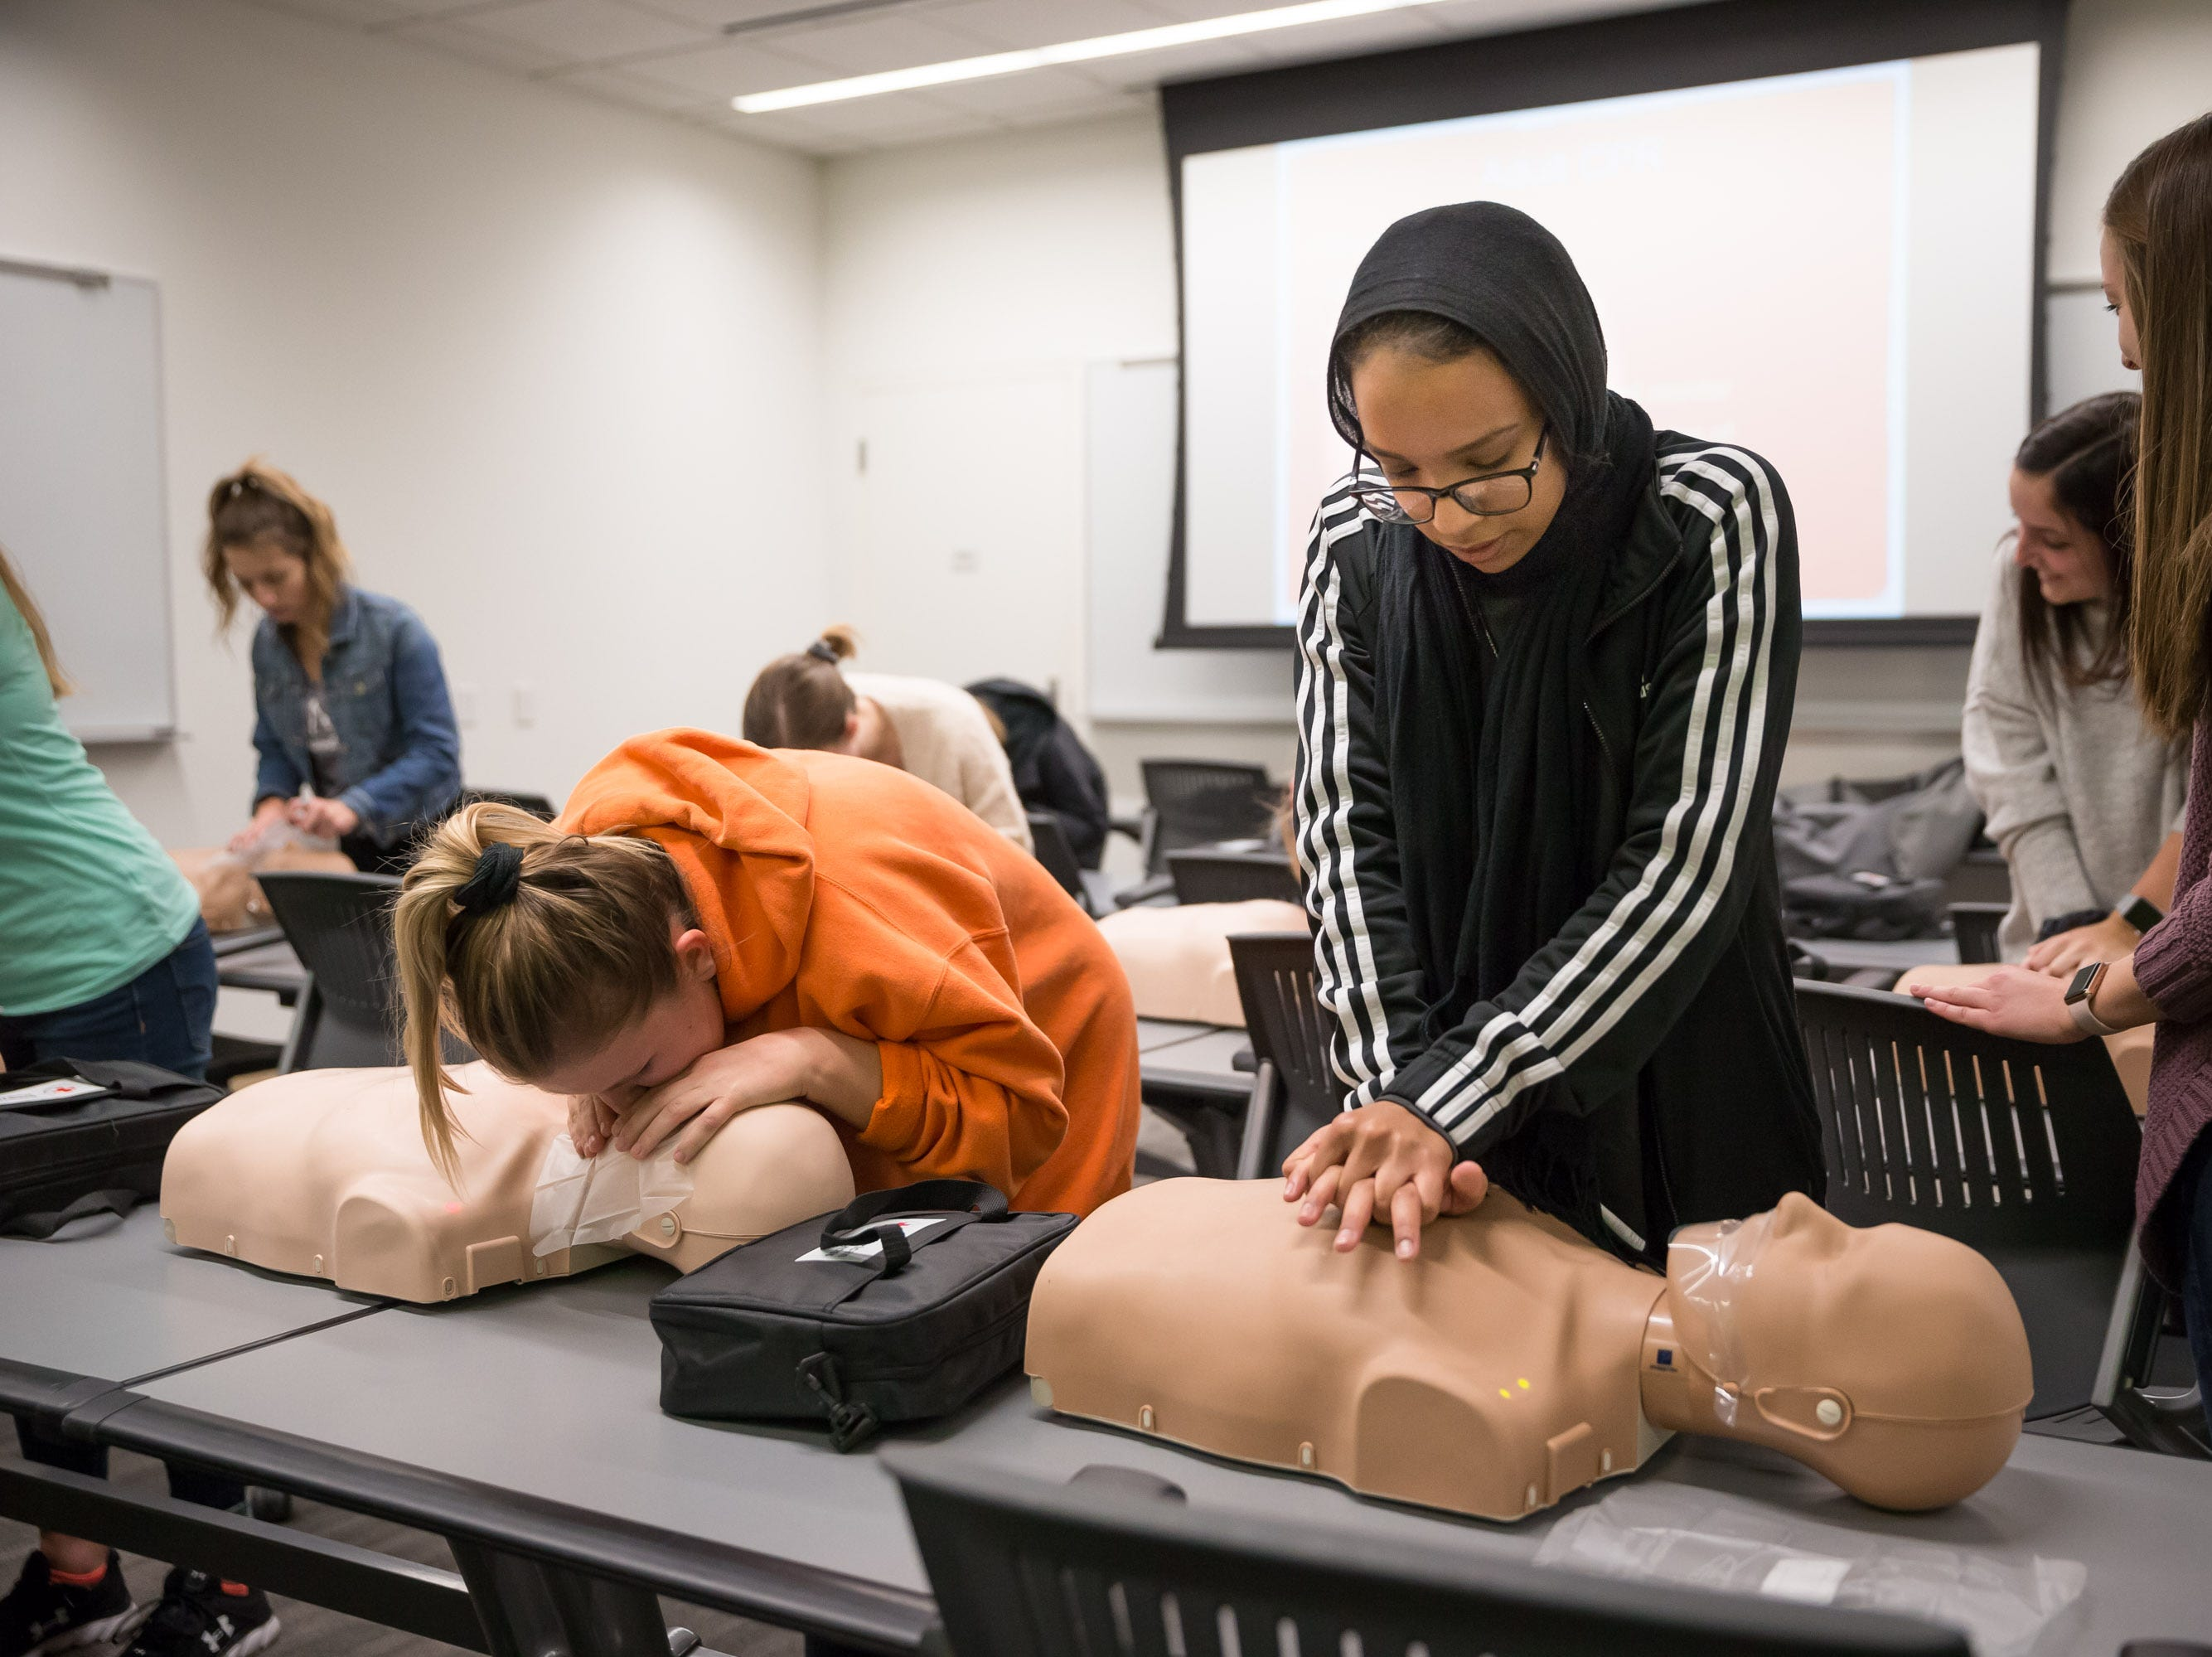 University of Iowa studetns Emma Kirincich, left, and Ebteehal Ismail practice CPR breaths and compressions on test dummies at the UI Campus Recreation & Wellness Center on Monday, October 29, 2018.